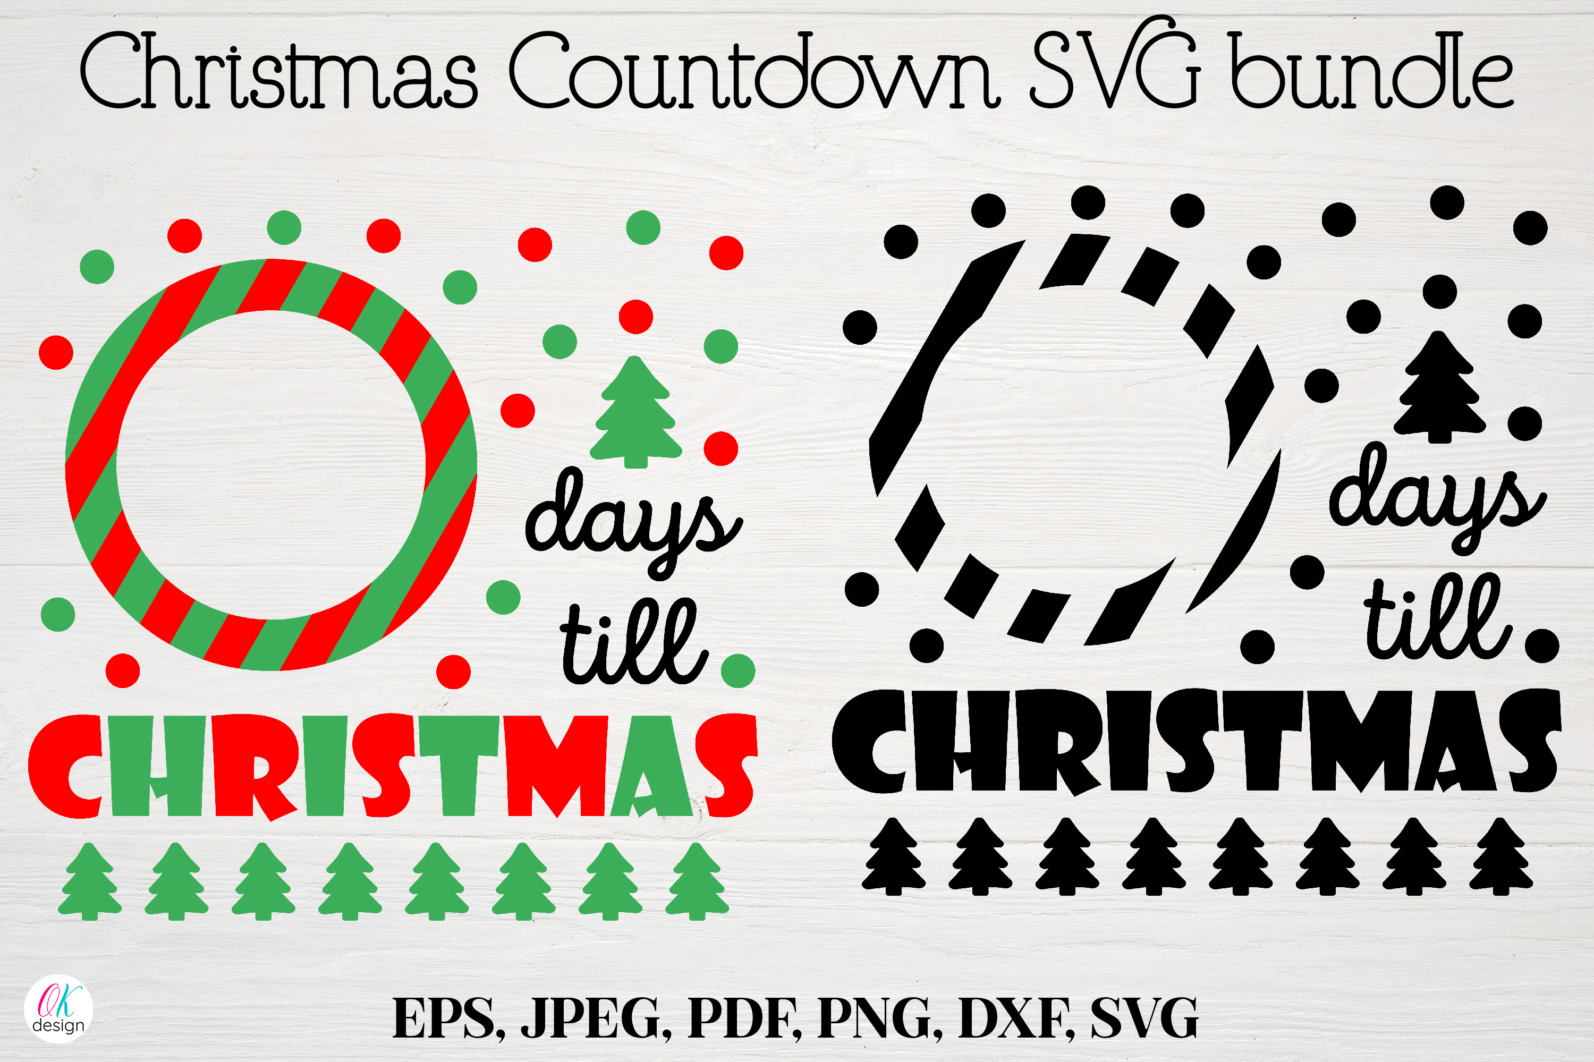 Christmas bundle Vol. 1. Christmas stickers. Christmas SVG bundle. - 7 Christmas svg Christmas countdown svg Christmas count down Christmas sign svg days until Christmas svg scaled -